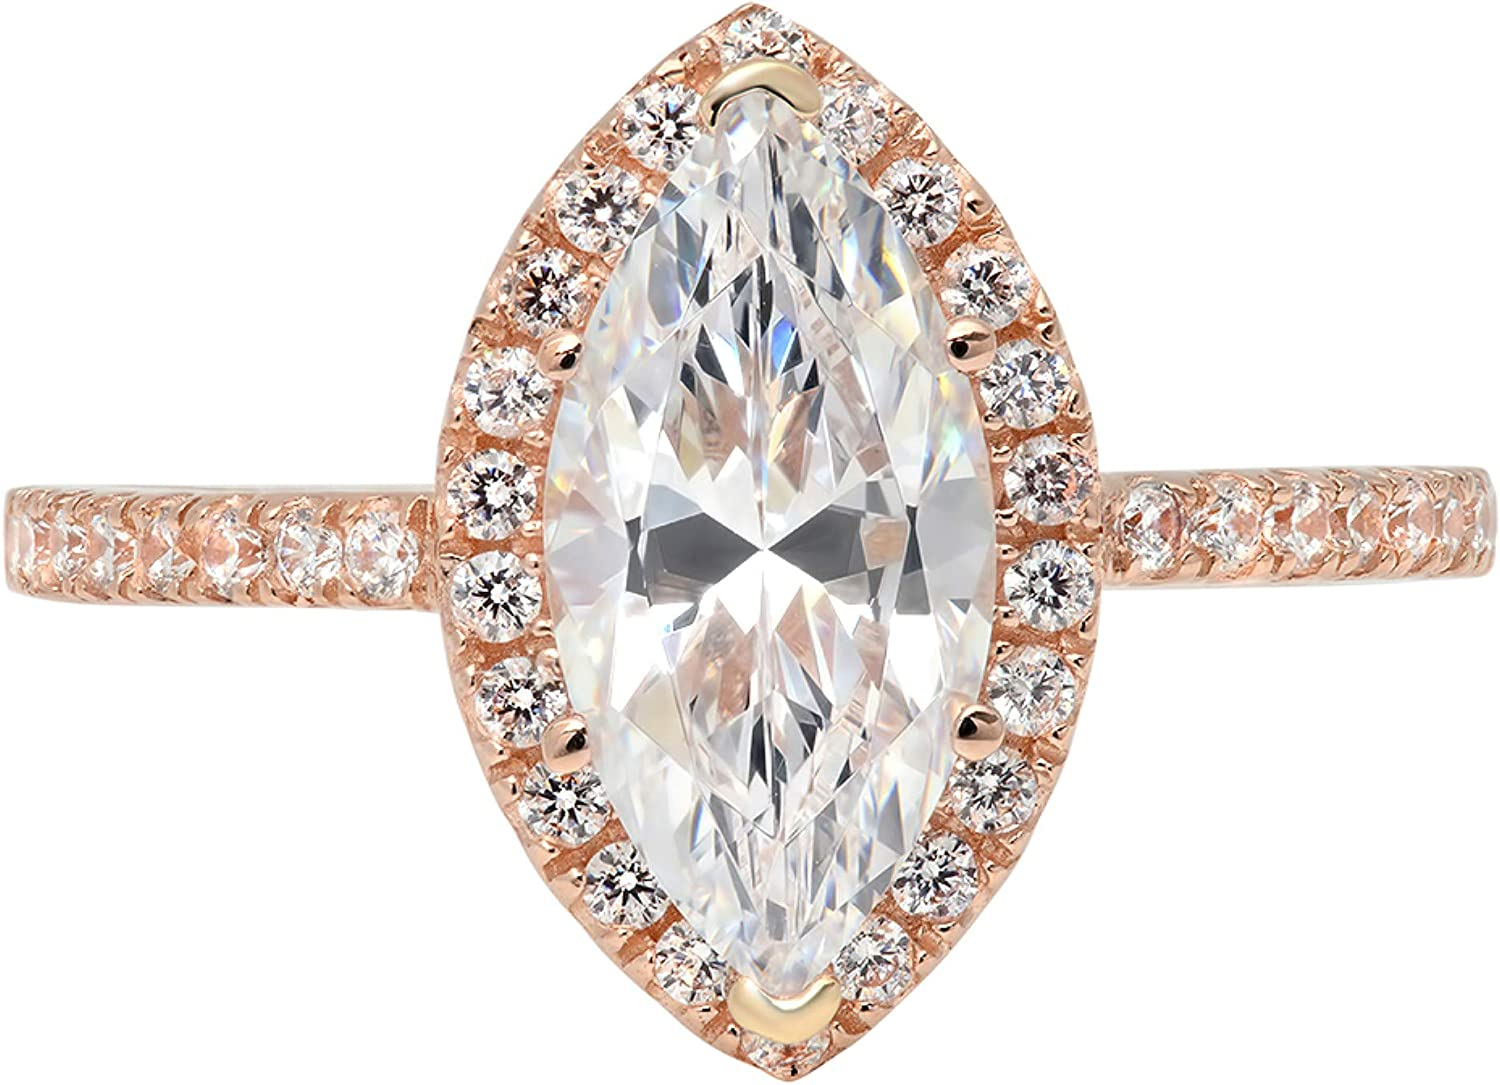 2.38ct Brilliant Marquise Cut Solitaire with Accent Halo Stunning Genuine Lab Created White Sapphire Ideal VVS1 & Simulated Diamond Engagement Promise Anniversary Bridal Wedding Ring 14k Rose Gold